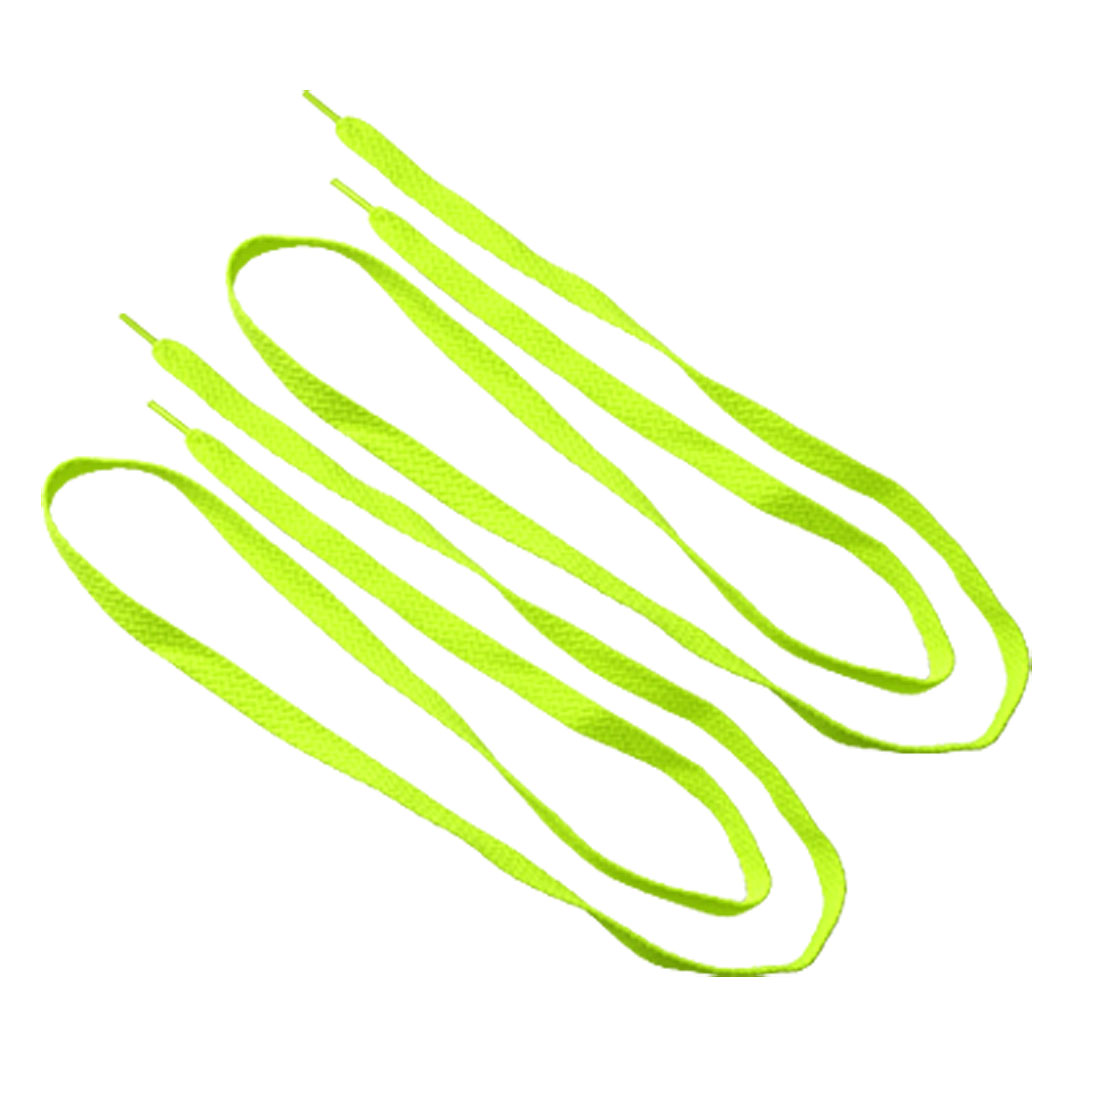 Yellowgreen Replacement Flat Shoelaces Bootlaces 2 PCS